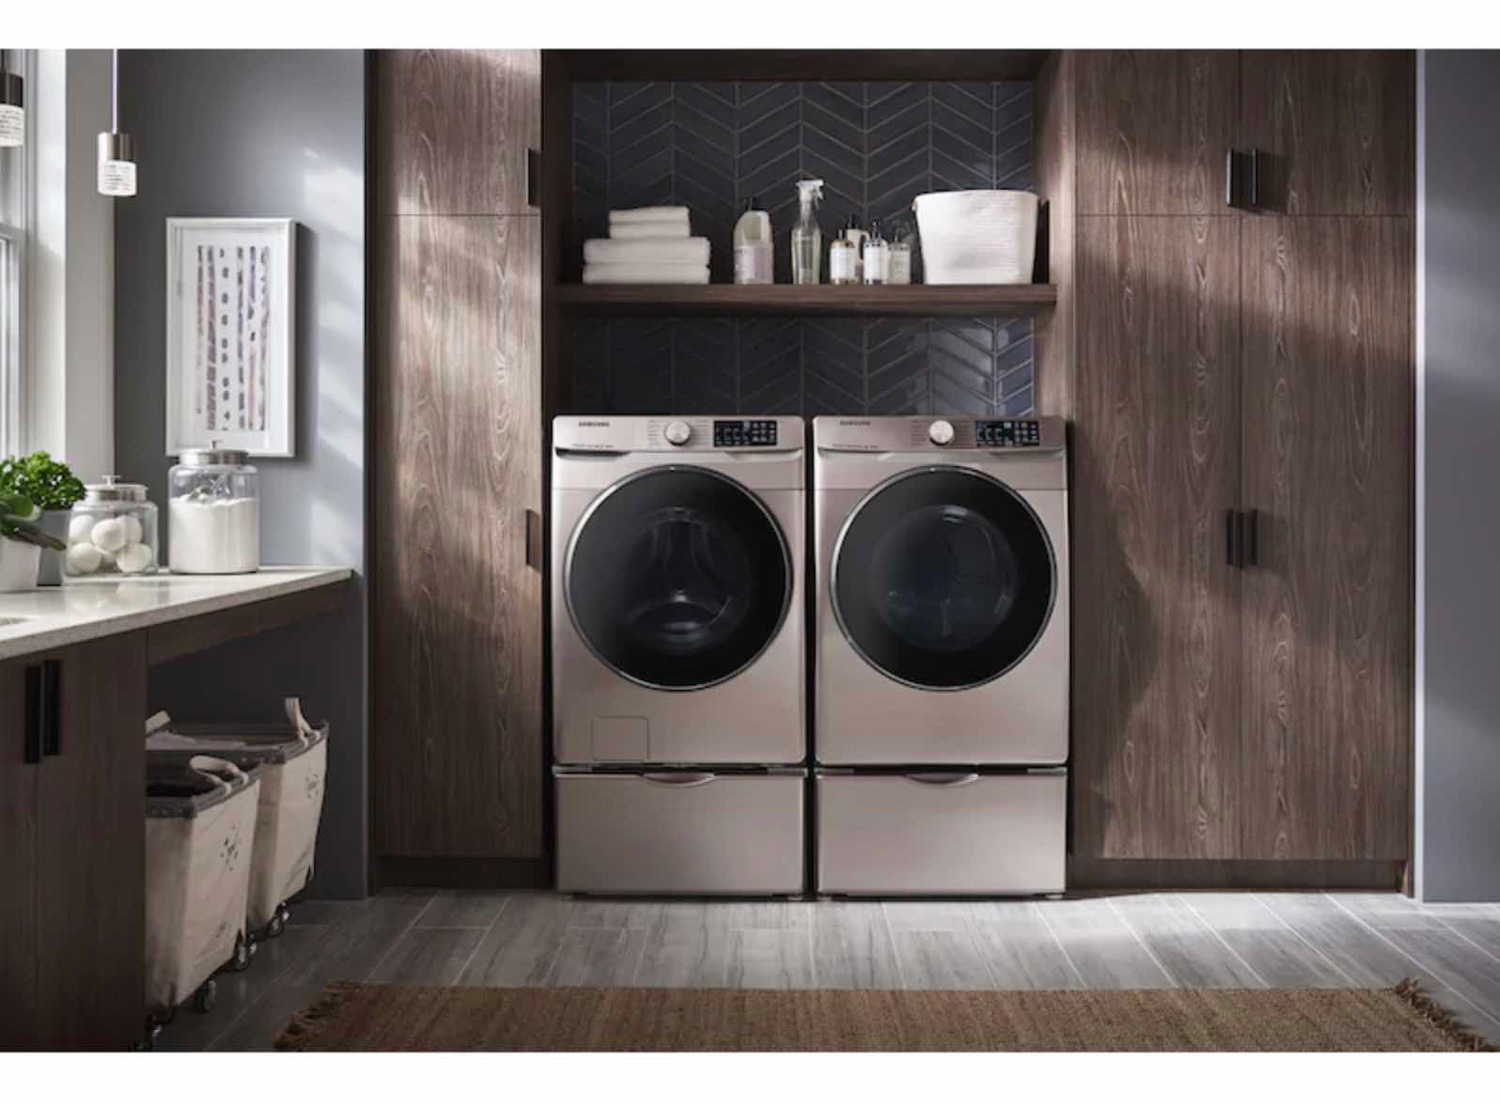 Best Samsung Stackable Washer And Dryer For 2020 Review